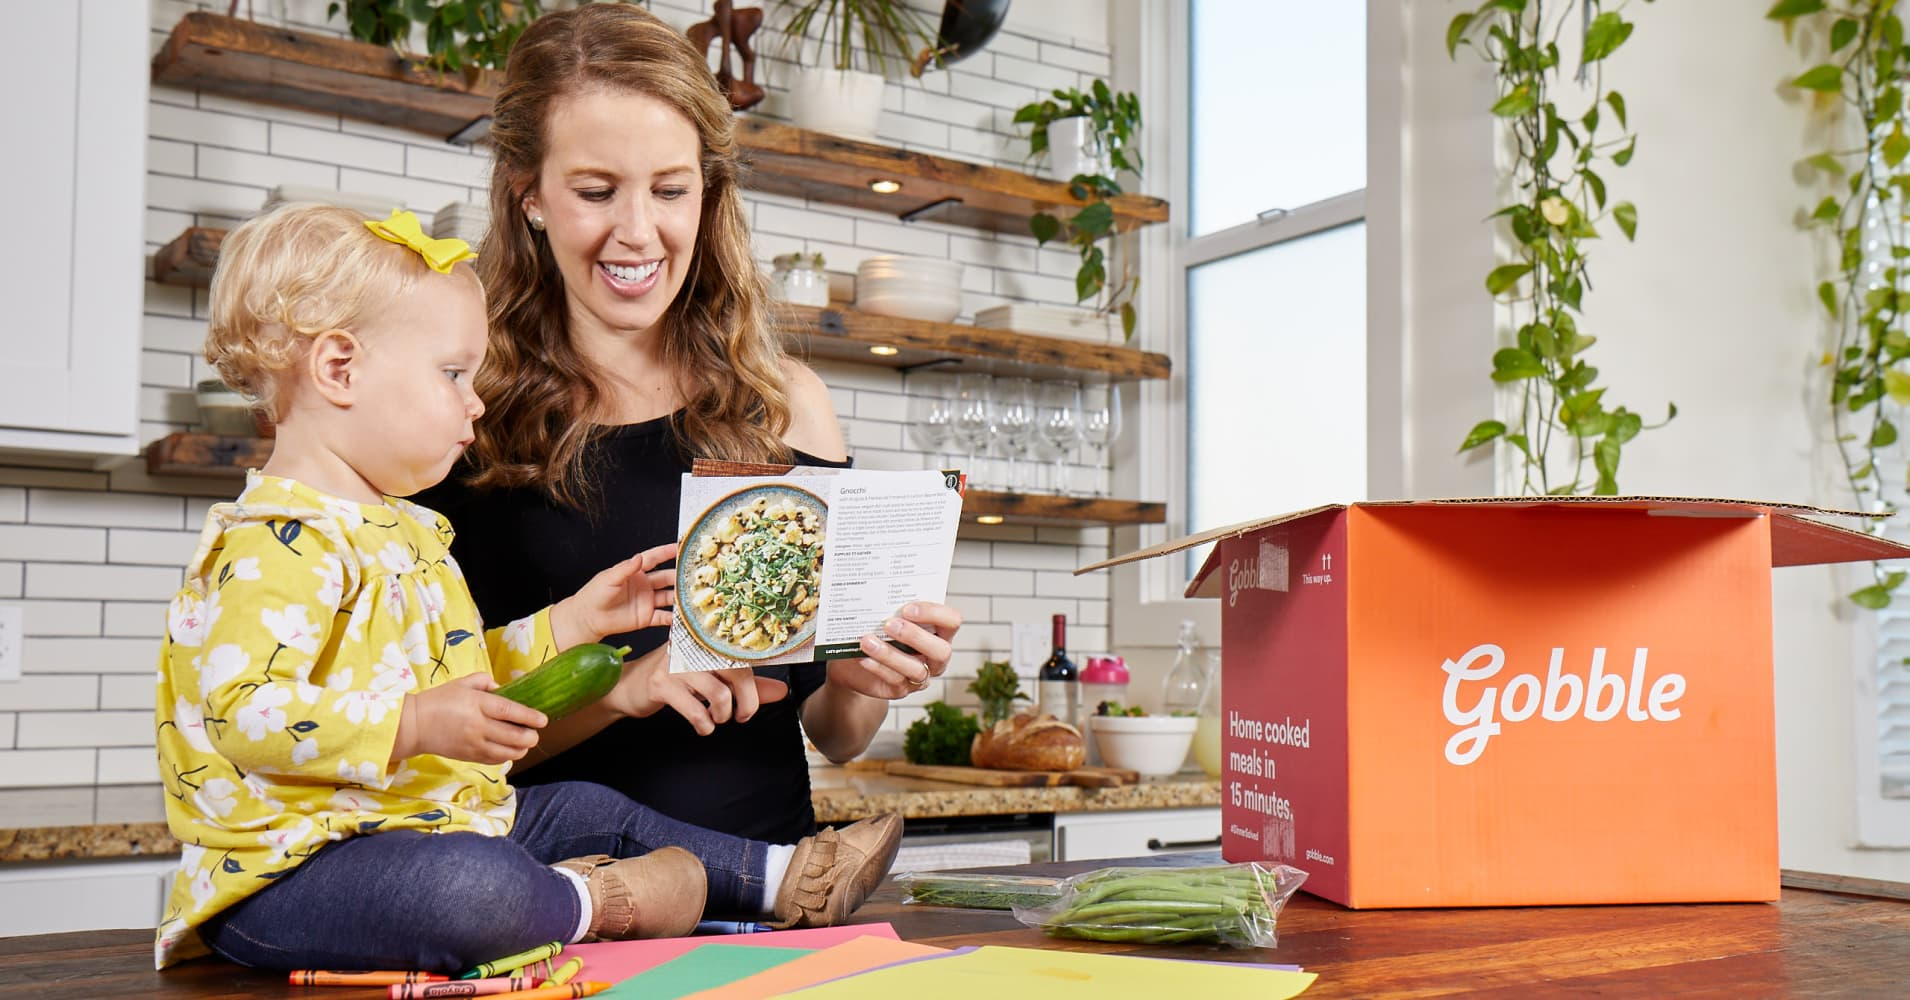 Gobble, the meal kit service with an 'army of chefs' ready to feed your family for $24 per box